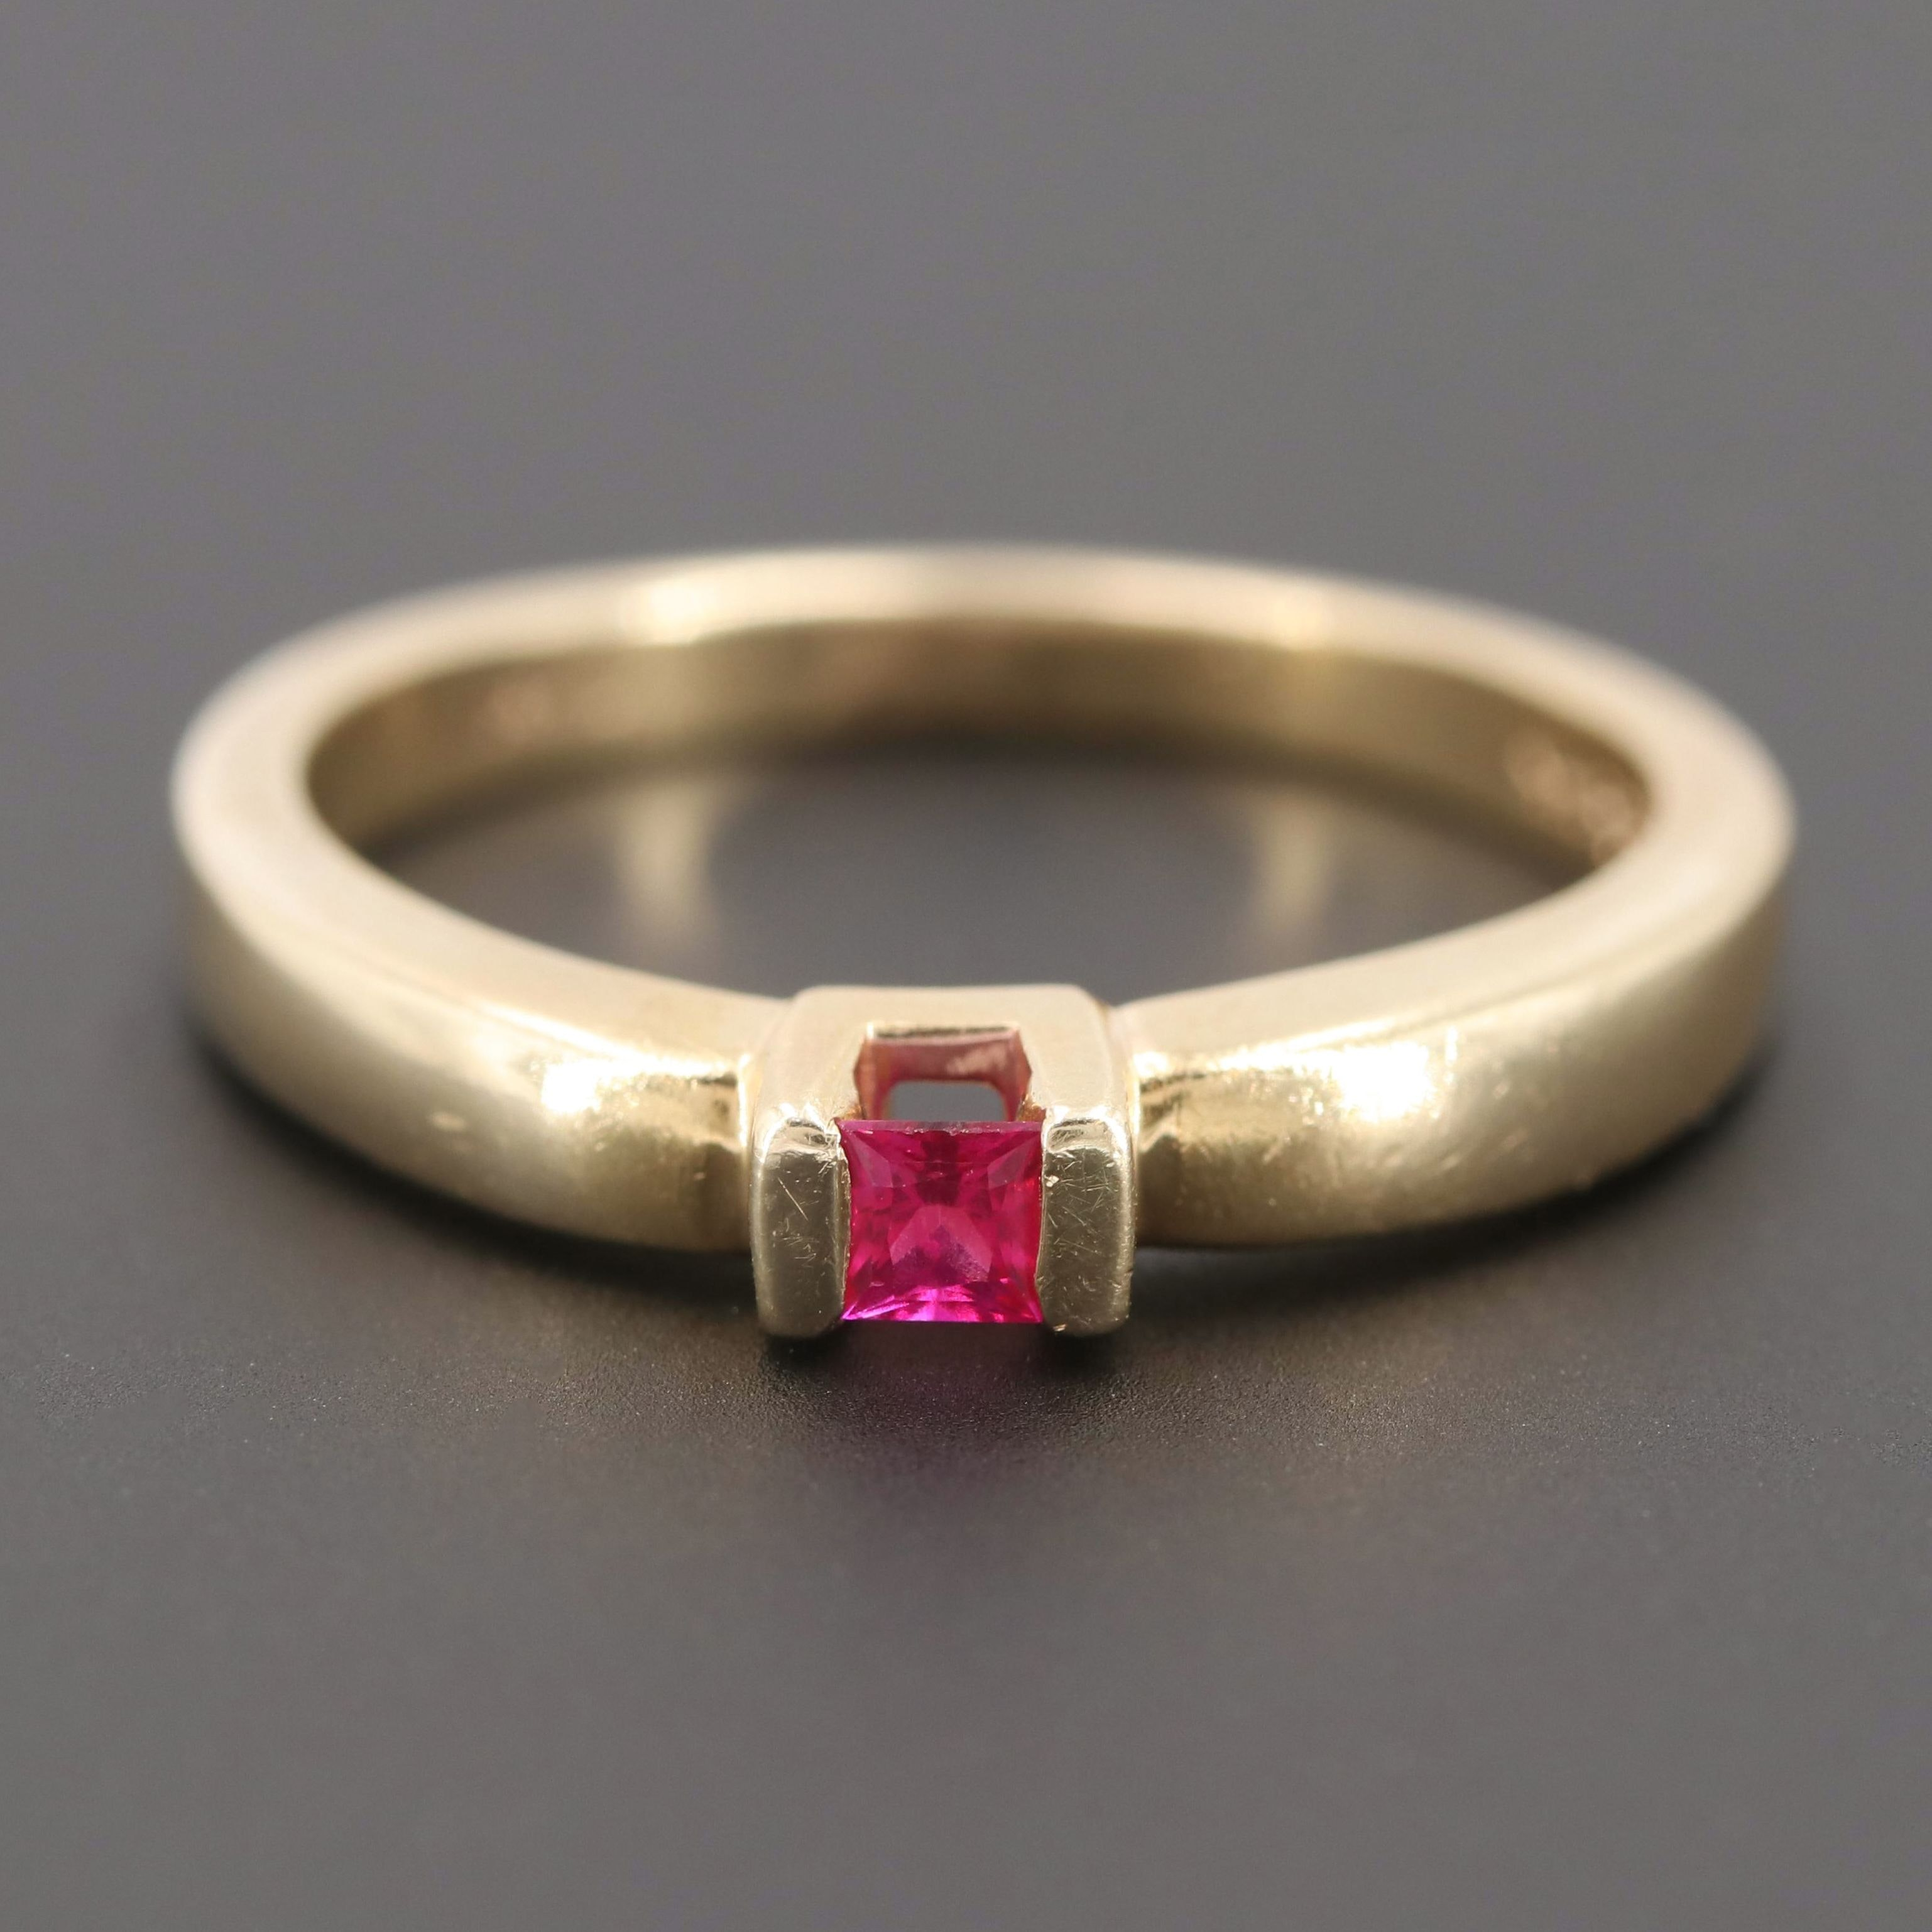 Shane Co. 14K Yellow Gold Ruby Ring